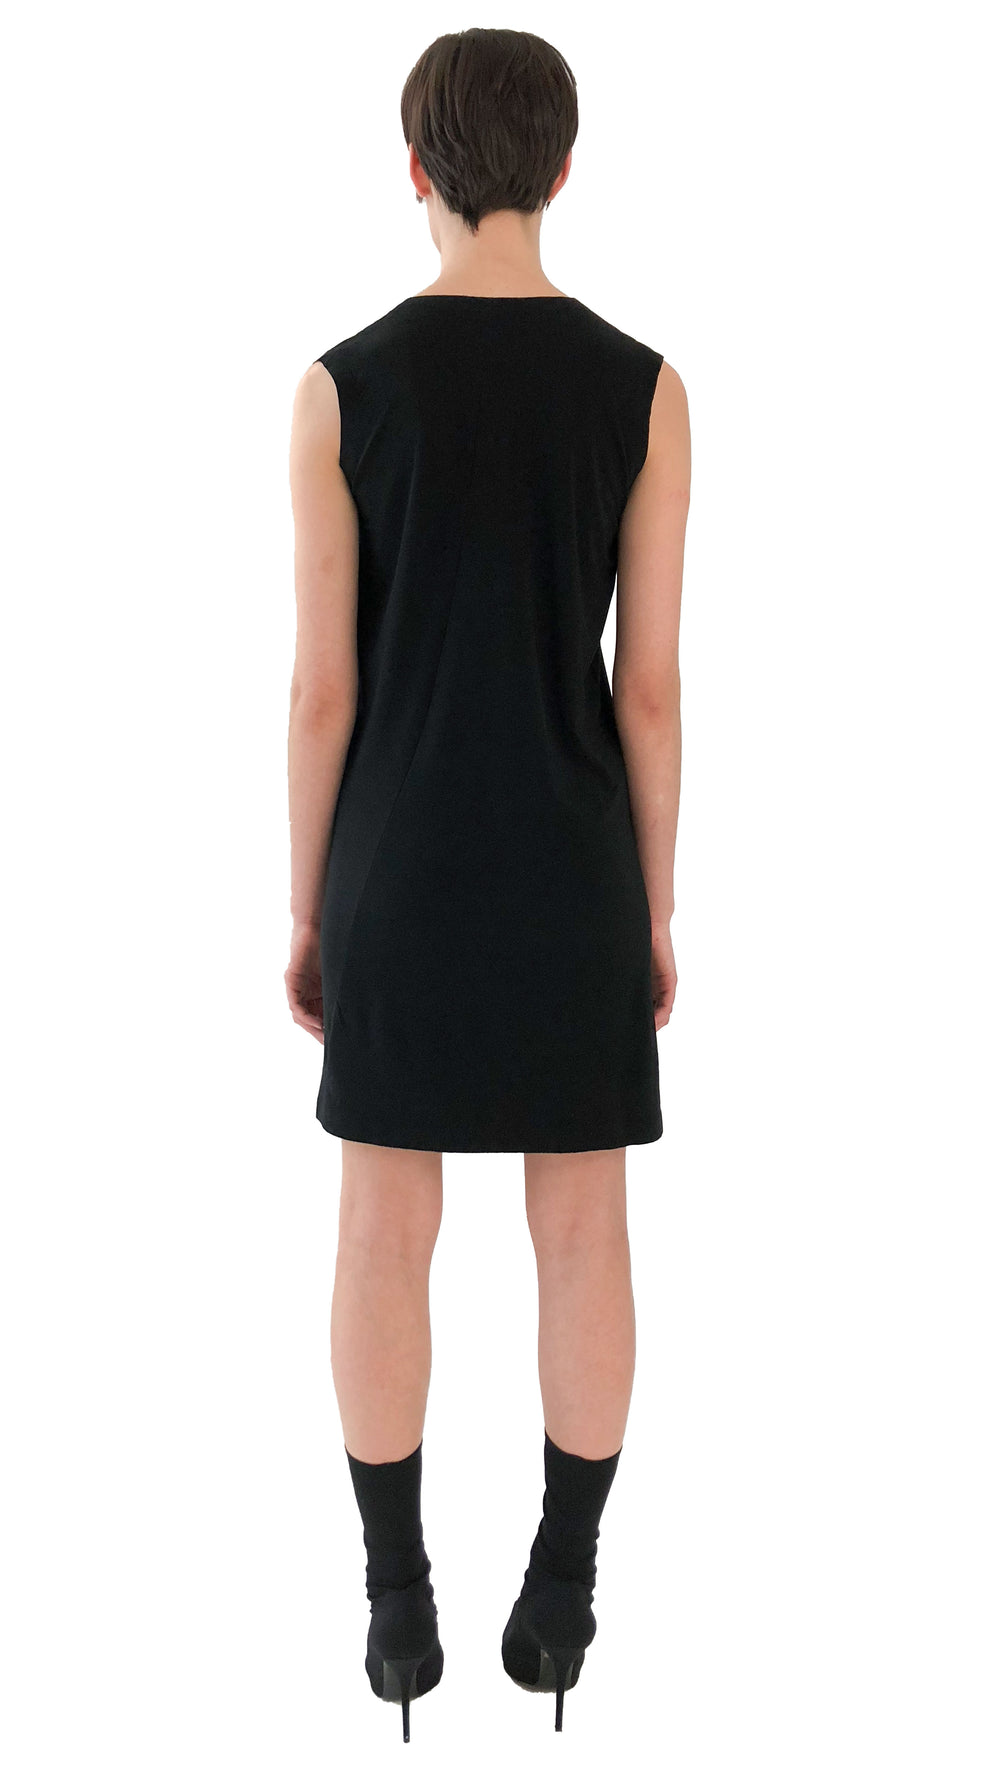 SLEEVELESS U NECK DRESS TO KNEE